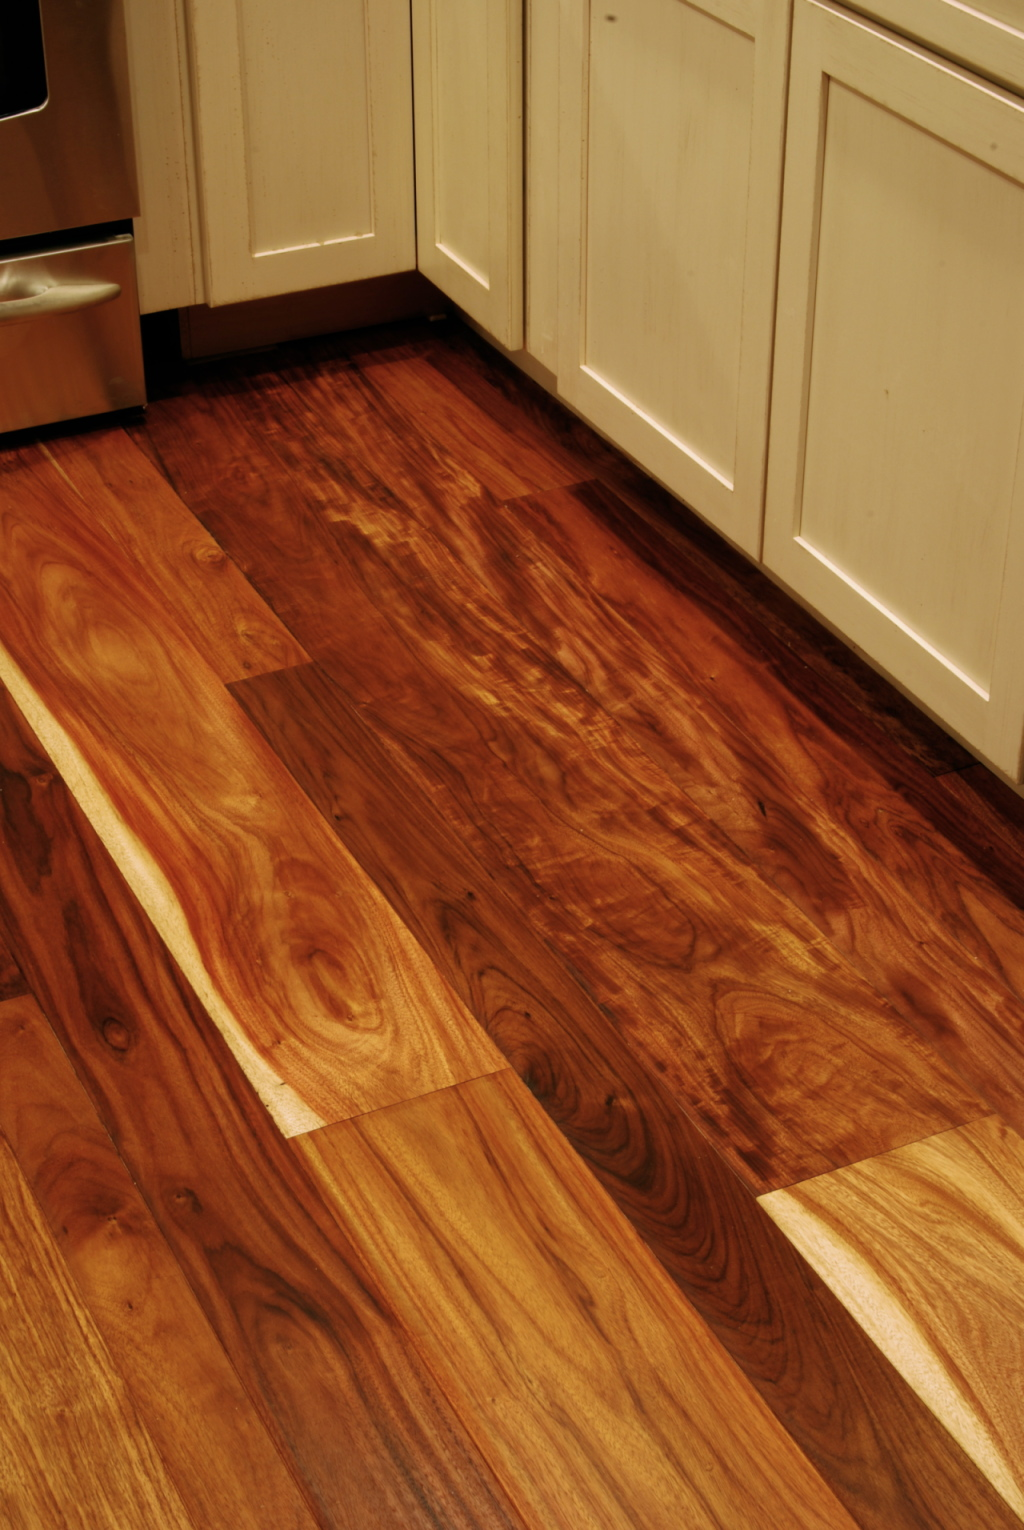 Para rosewood custom wide plank 3 4 x 4 to 24 4 39 14 for Pre finished wood flooring